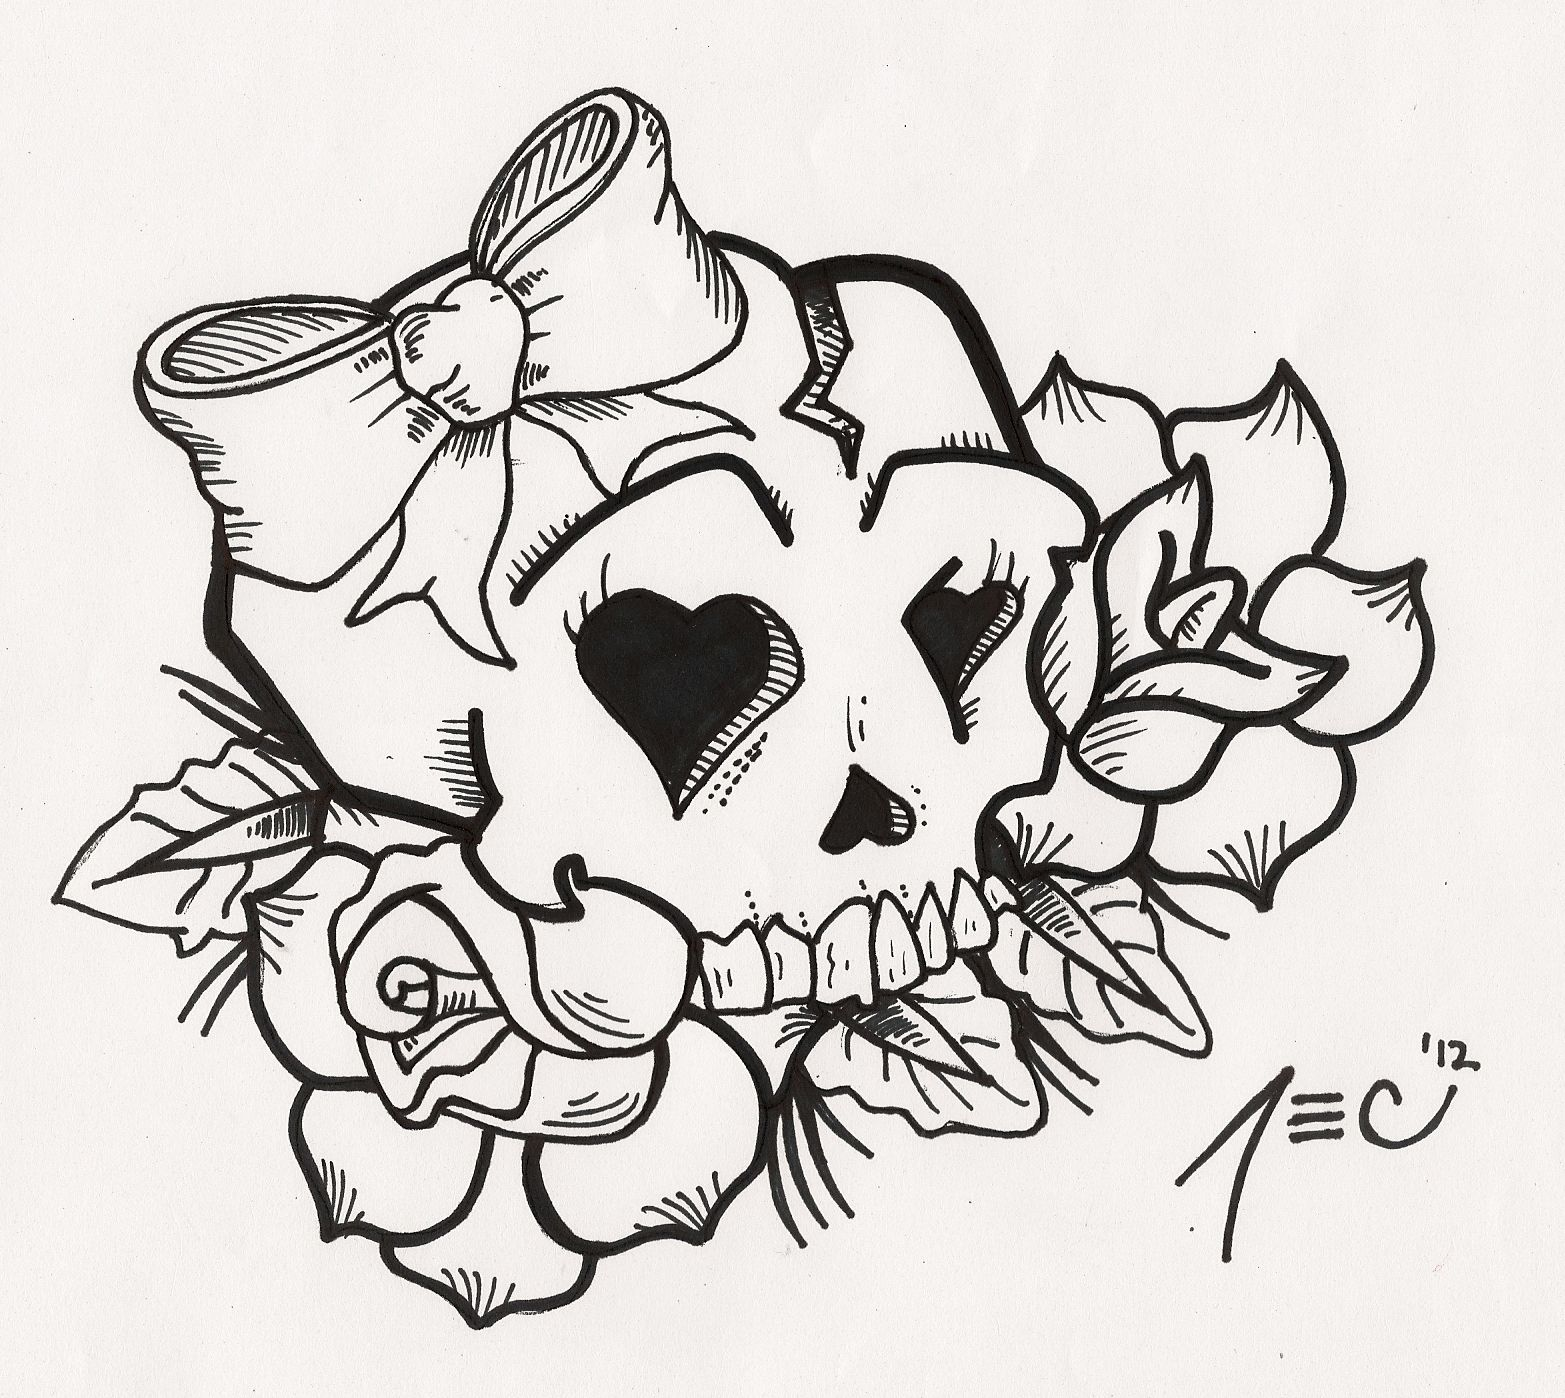 Girly Skull Tattoo By Theadrock On Deviantart Girly Skull Tattoos Skull Tattoo Design Skull Coloring Pages